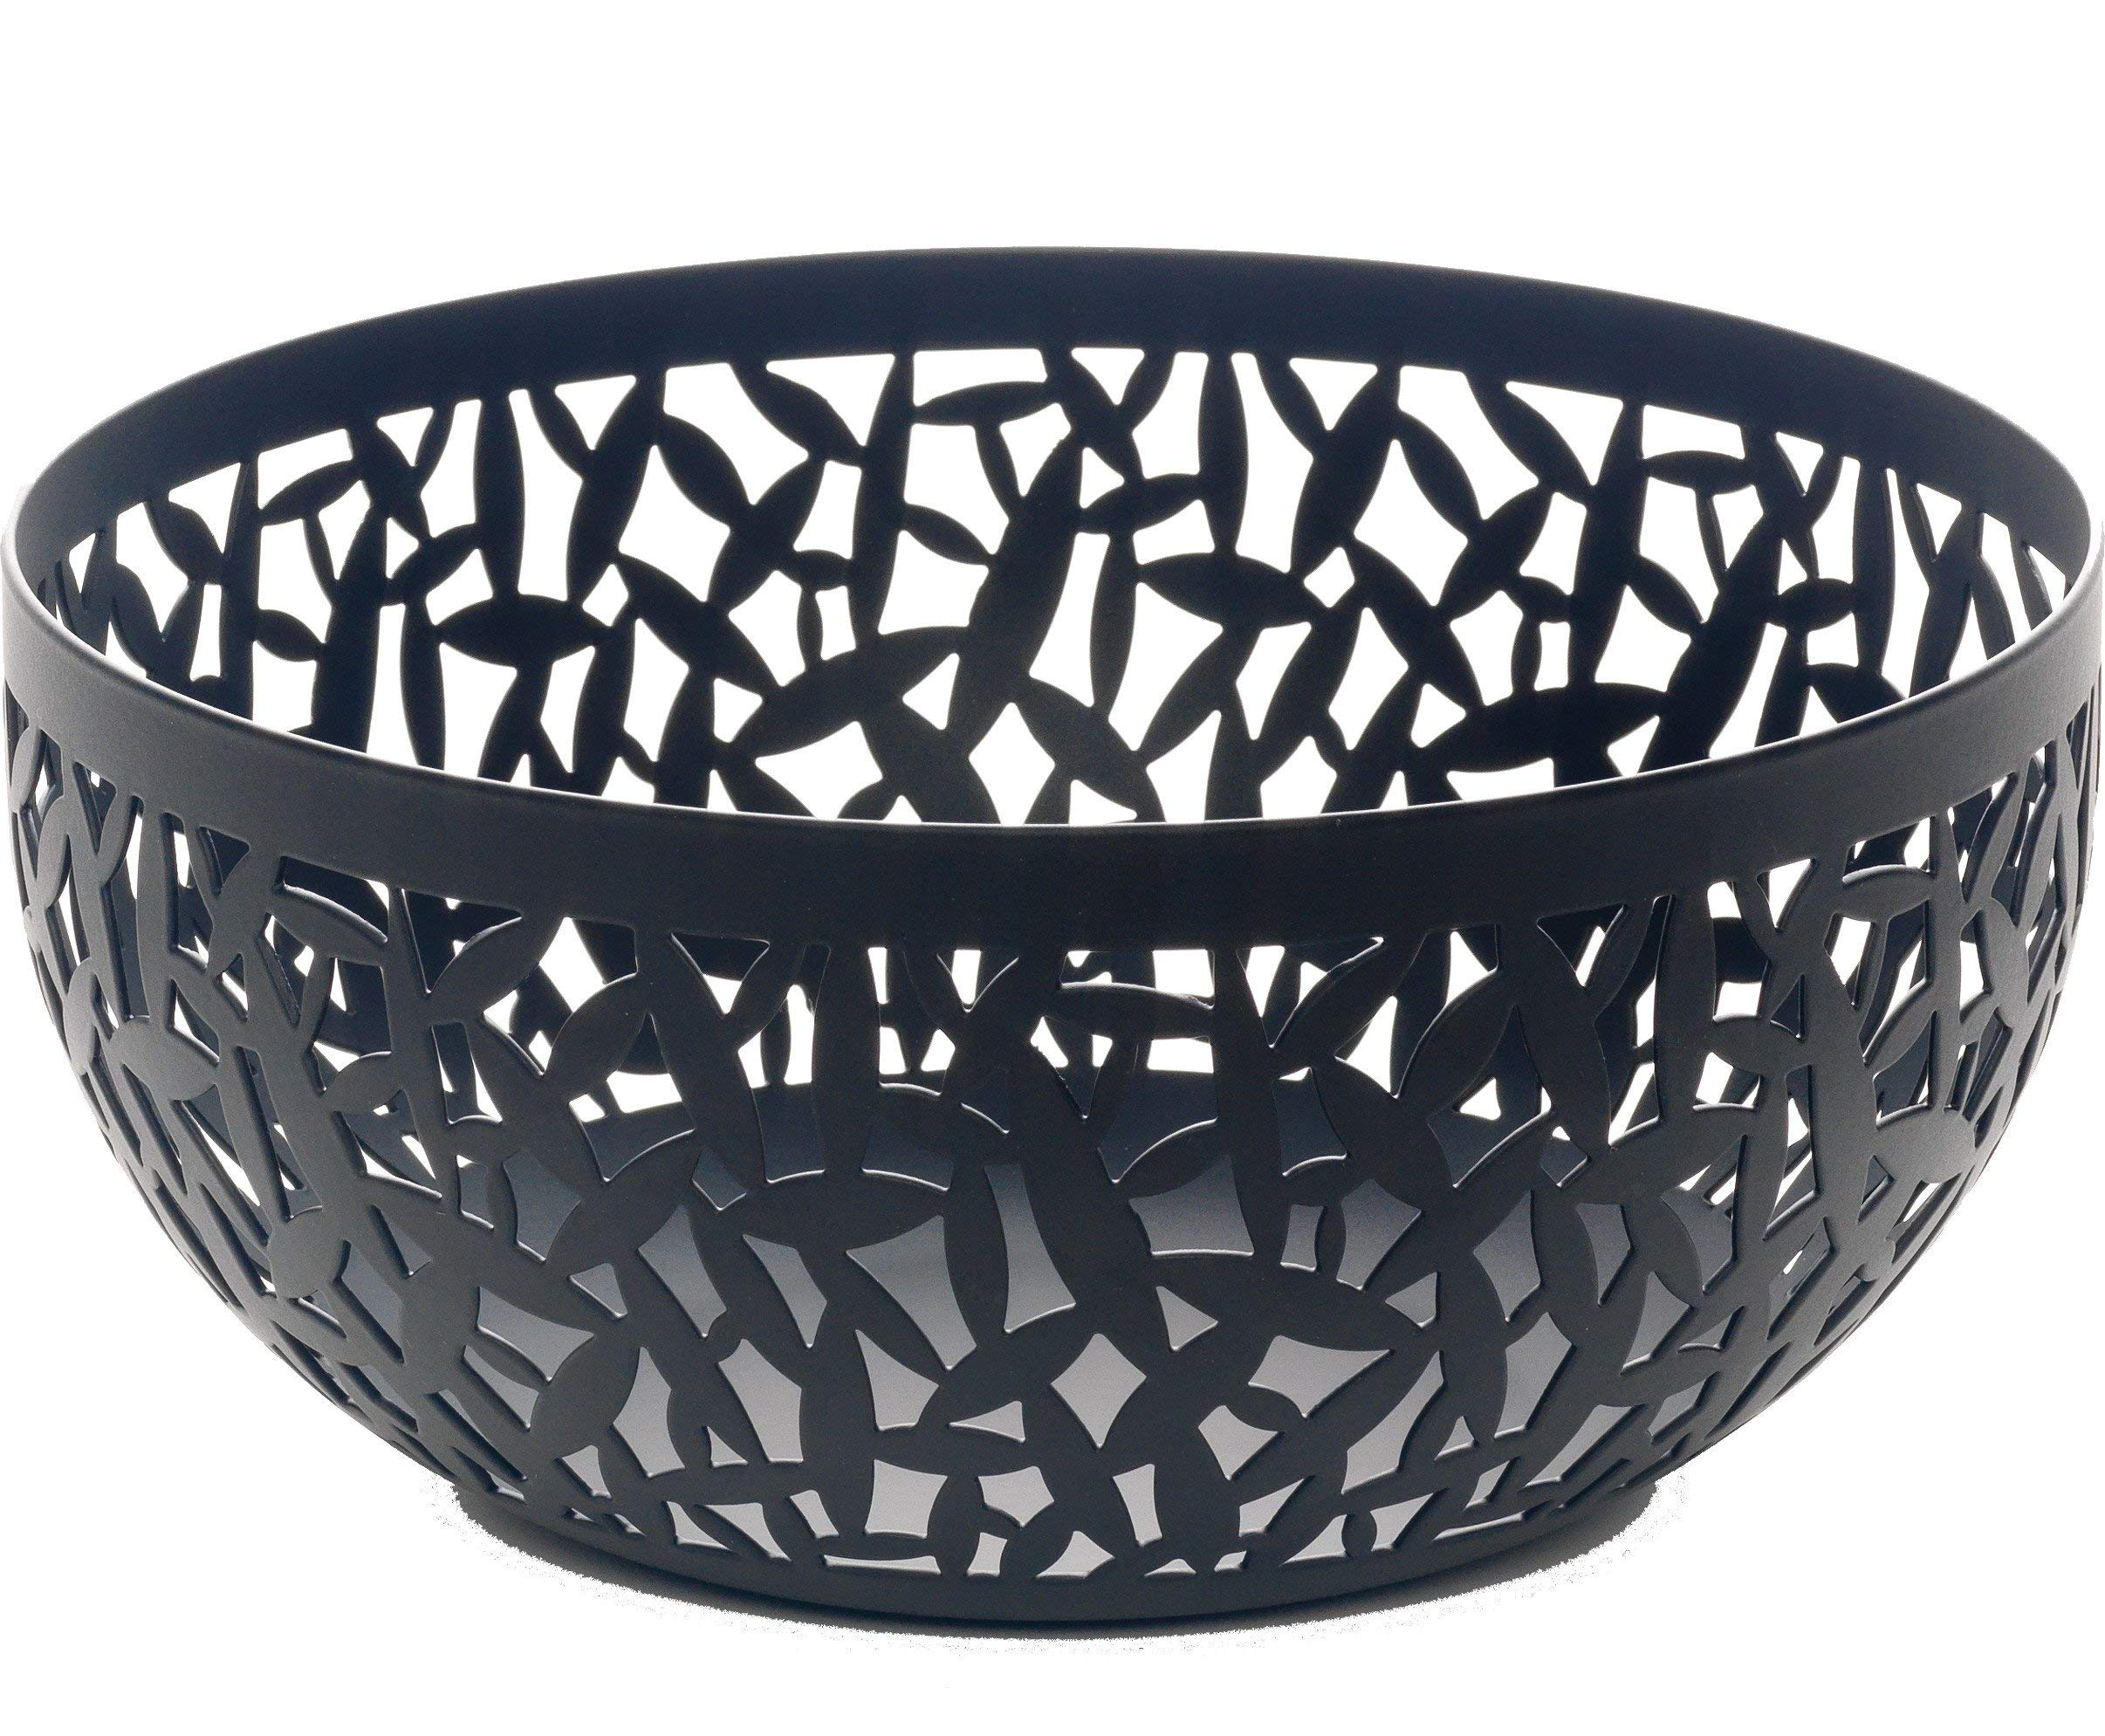 Alessi MSA04/21 B''CACTUS!'' Fruit Holder in Steel Coloured With Epoxy Resin, Black by Alessi (Image #2)